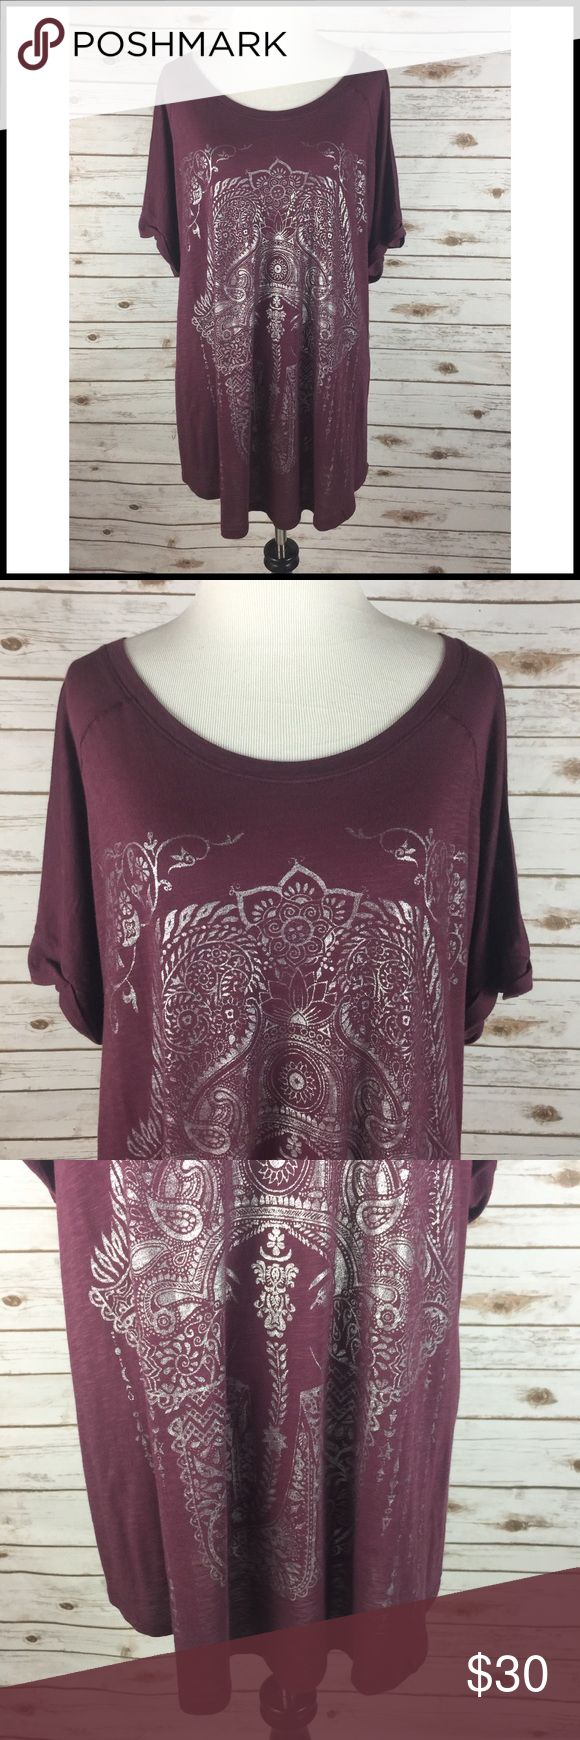 Lucky Brand 2X Maroon Silver Graphic T-Shirt NWT Lucky Brand Graphic Tee - Maroon w/ Metallic Silver Design on Front Women's Size 2X  New with tags - MSRP $39.50 52% Micromodal / 48% Cotton  Super soft and comfy short sleeve t-shirt Crew neck Metallic silver medallion pattern on front Rolled sleeves - batwing/dolman style  Measurements (in inches): Chest (armpit to armpit) - 23 Sleeve (end to shoulder seam) - 12 Length (back of neck to bottom hem) - 30.5 Lucky Brand Tops Tees - Short Sleeve